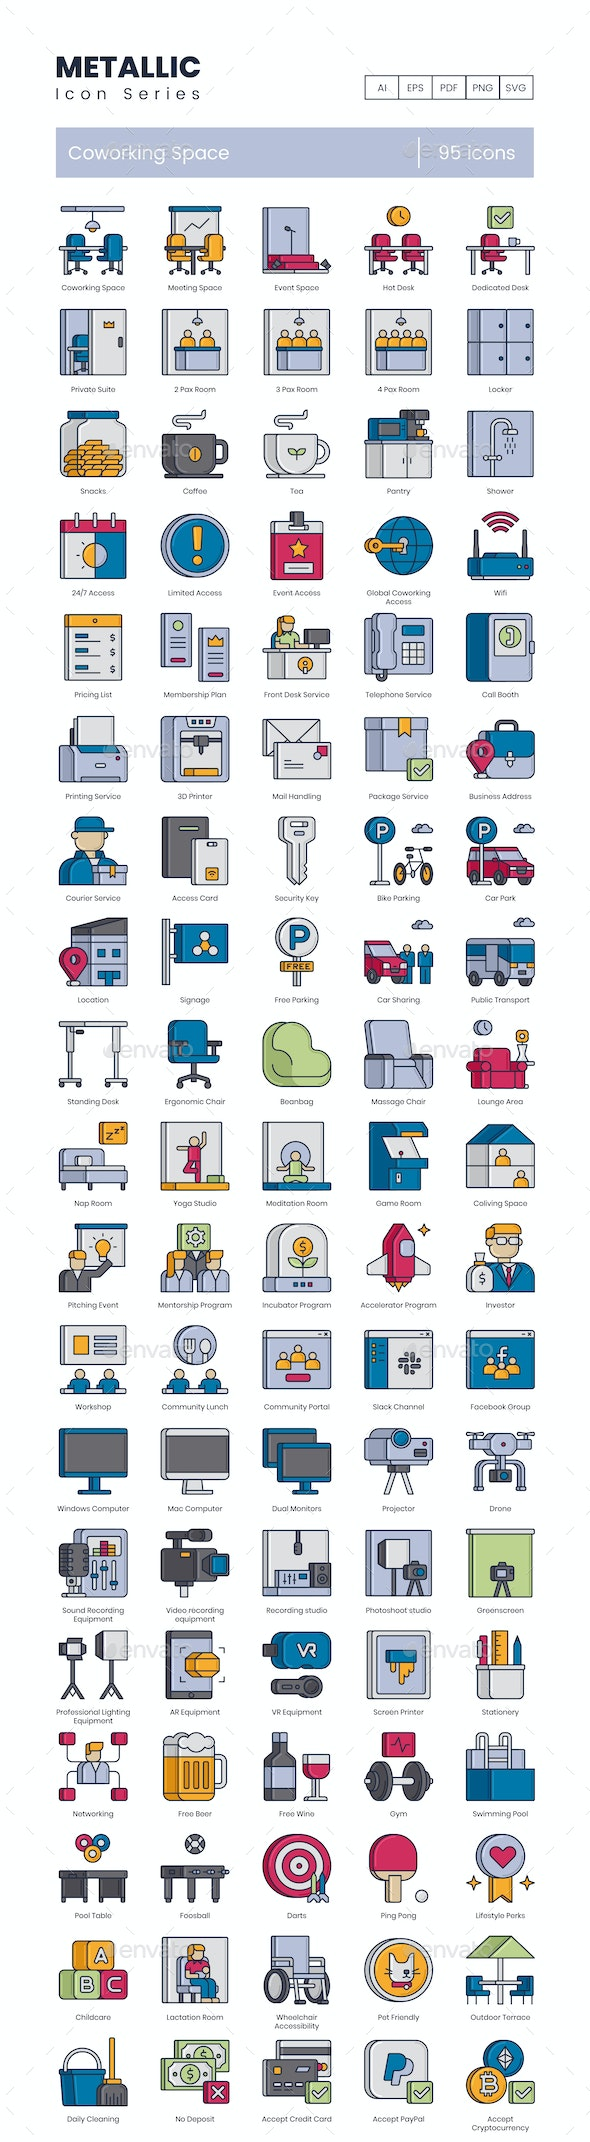 Coworking Space Icons - Metallic - Business Icons